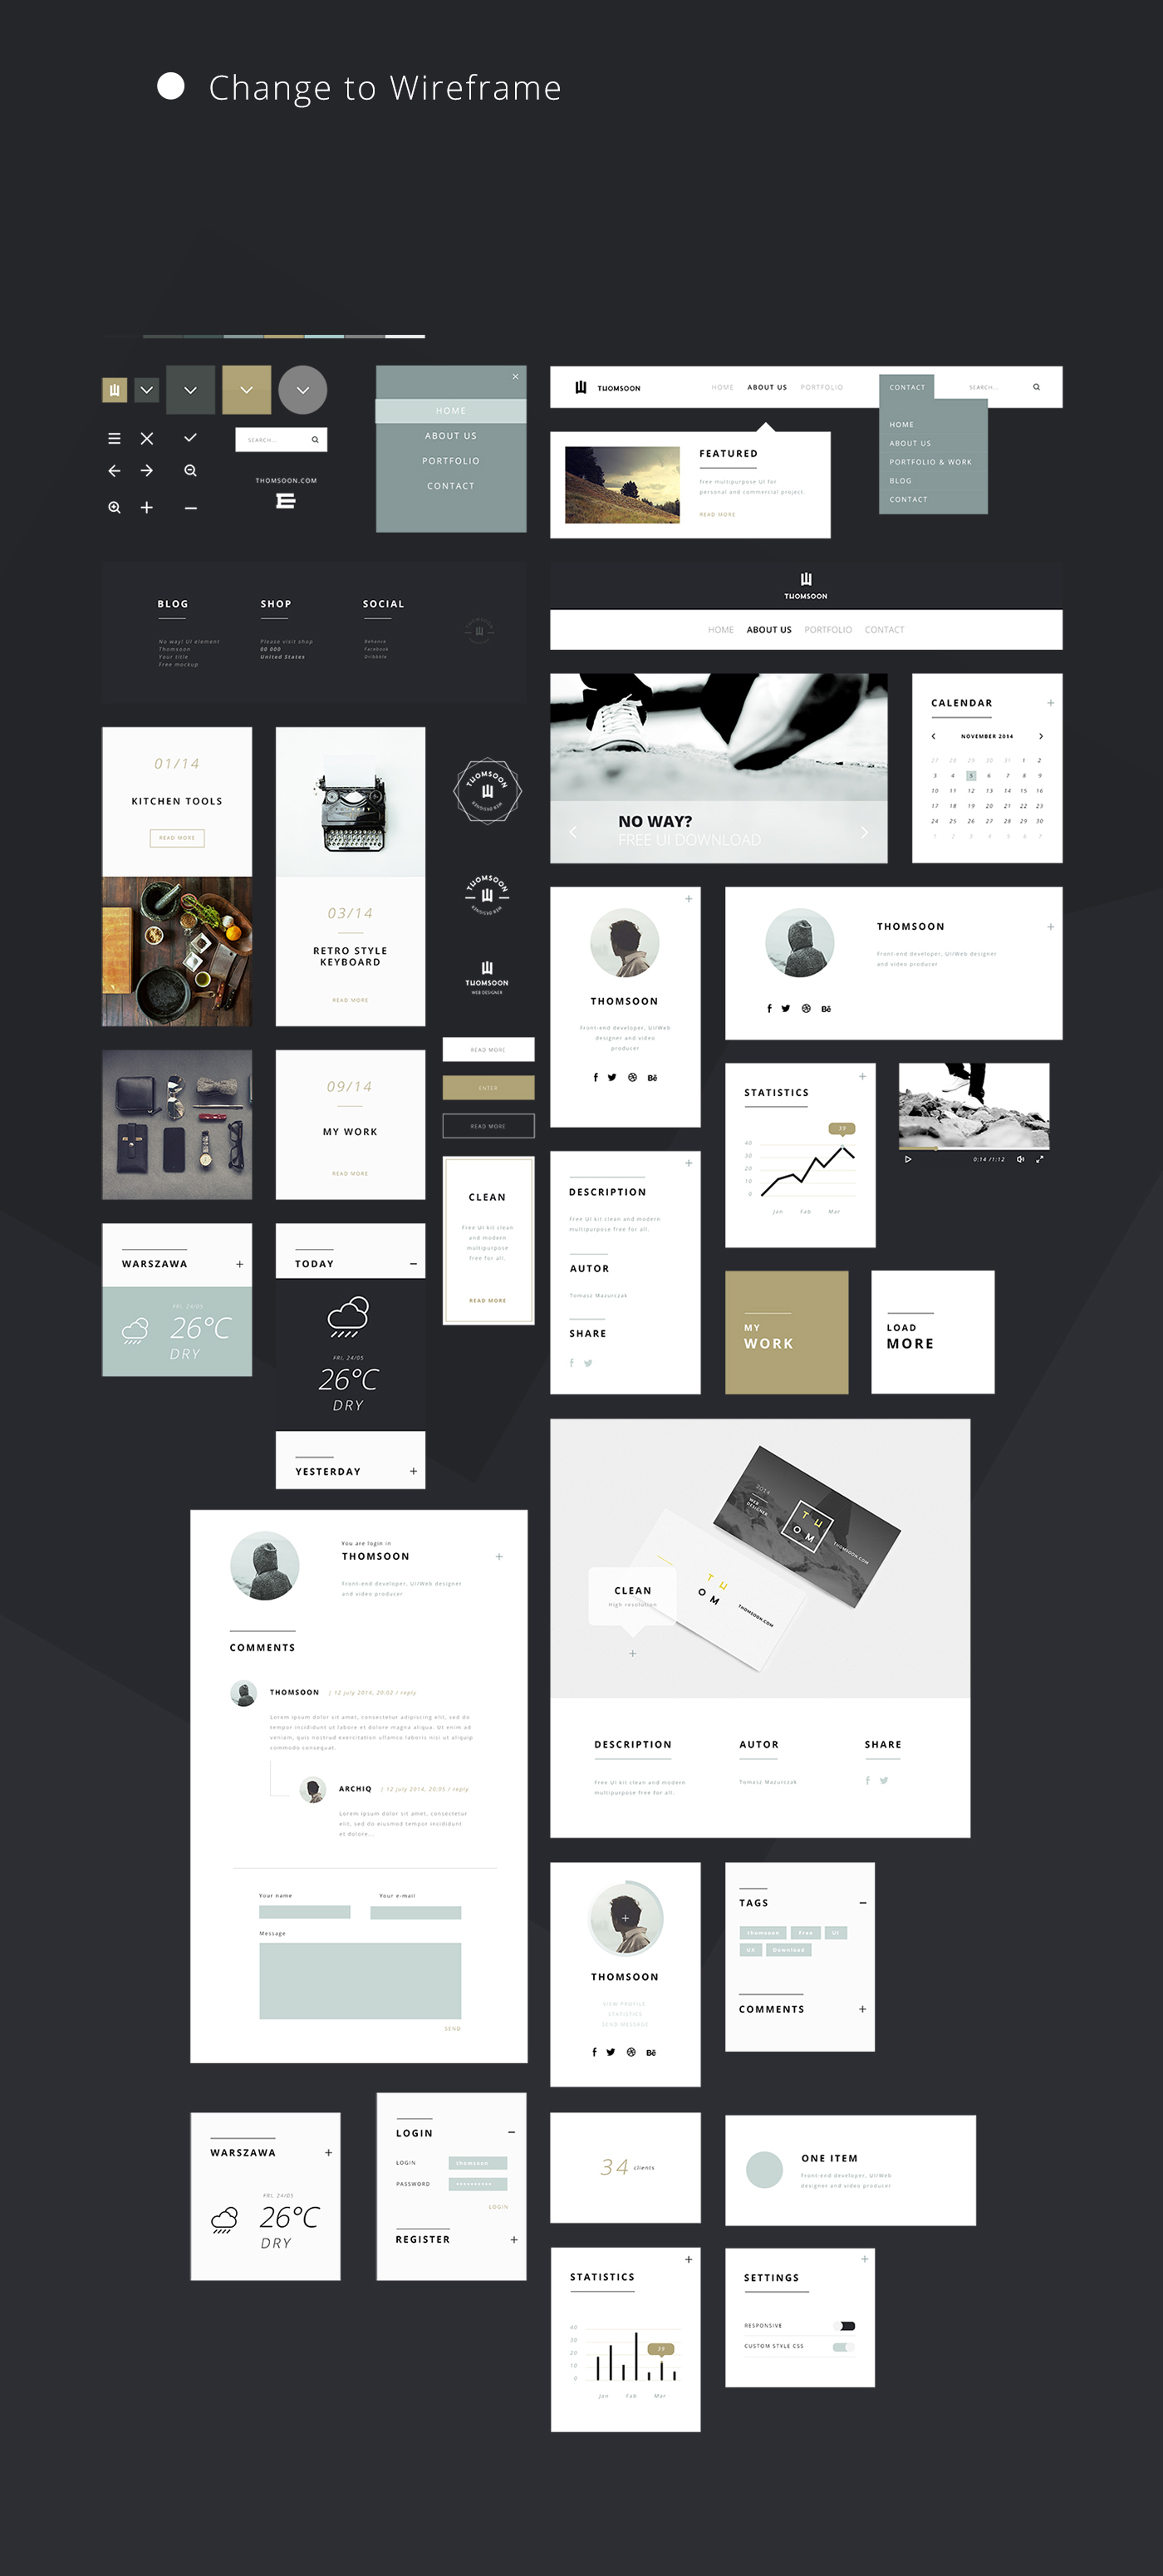 55 Elements UI Kit Changeable Wireframe